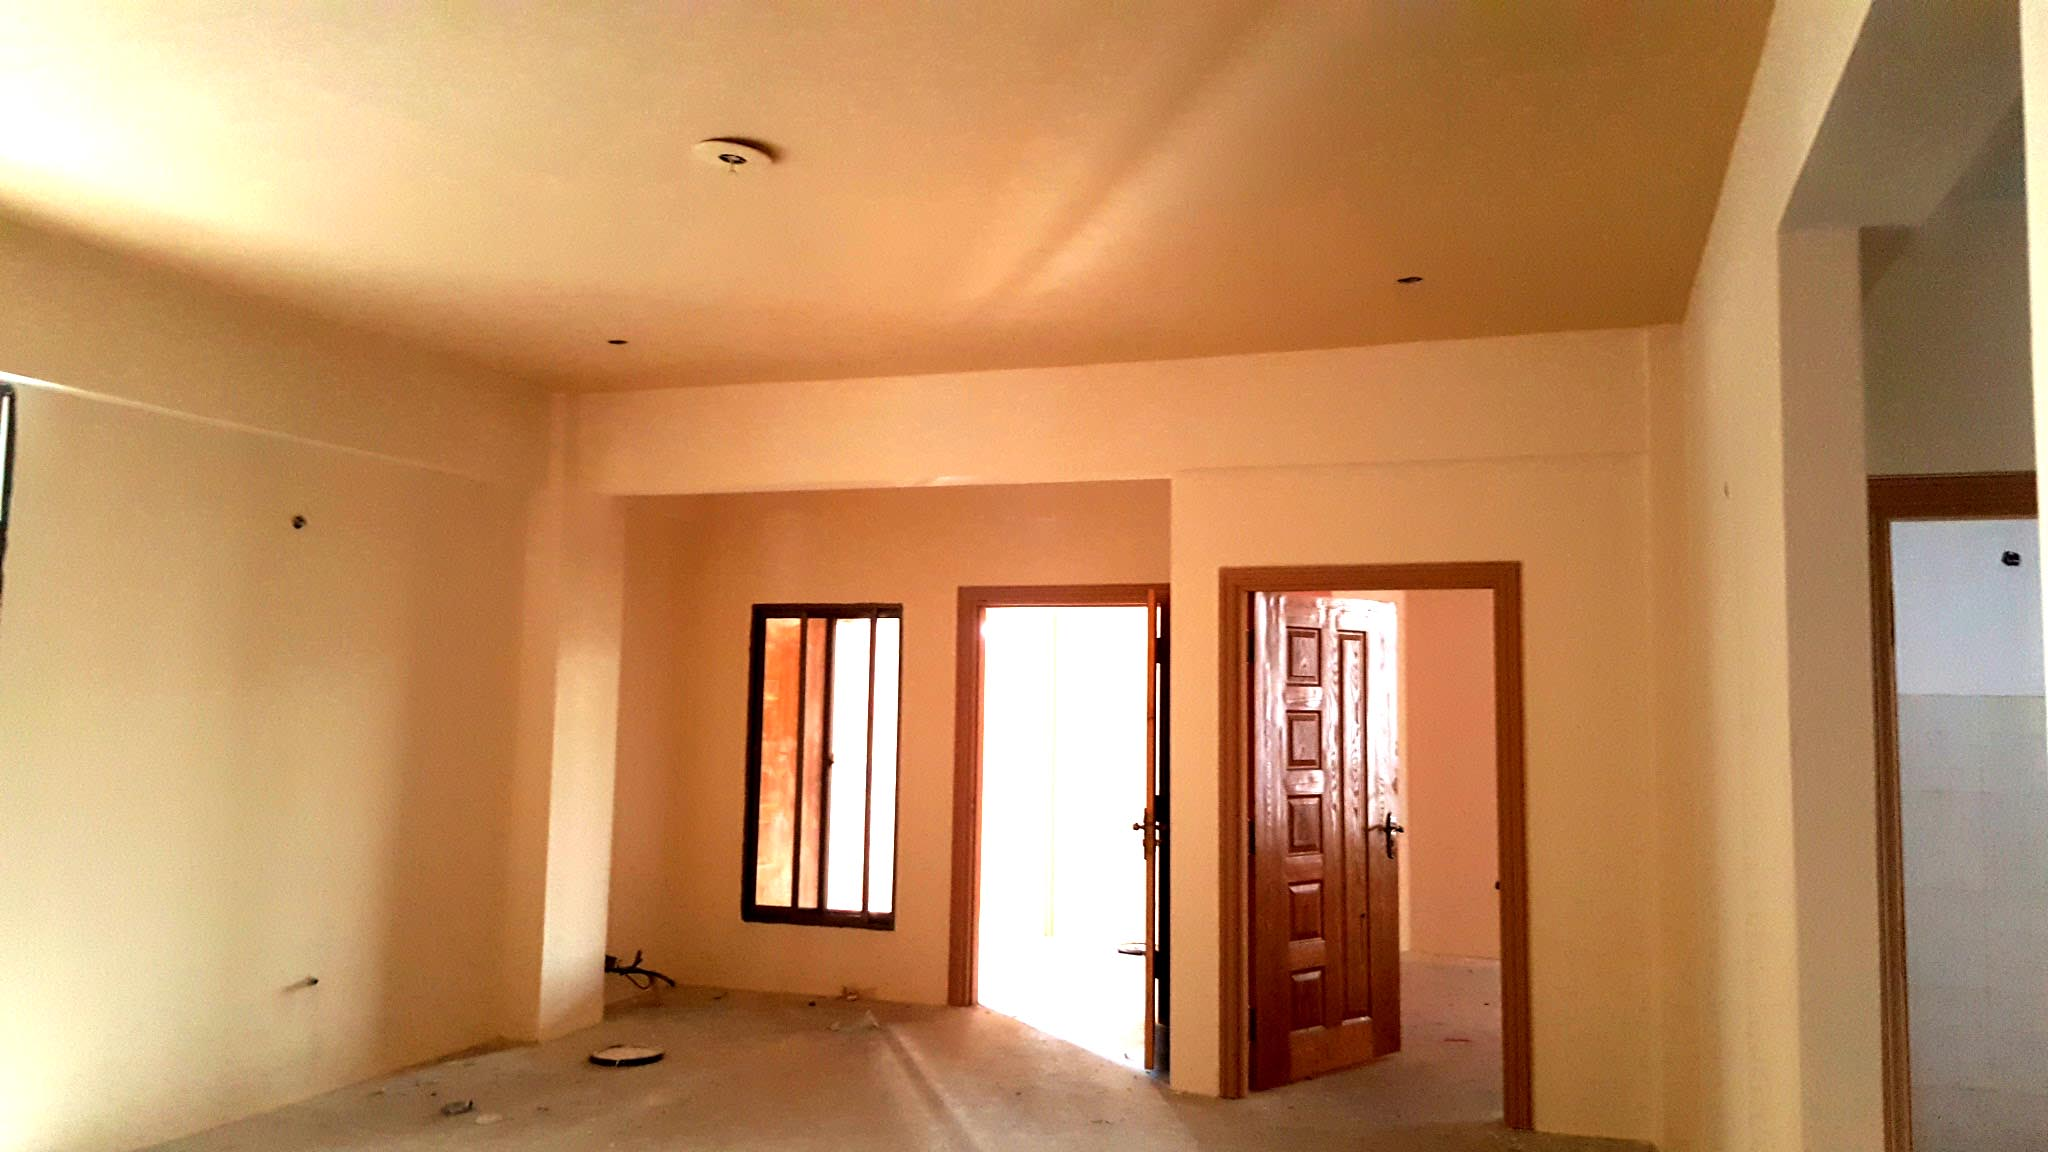 House for rent at airport road quetta